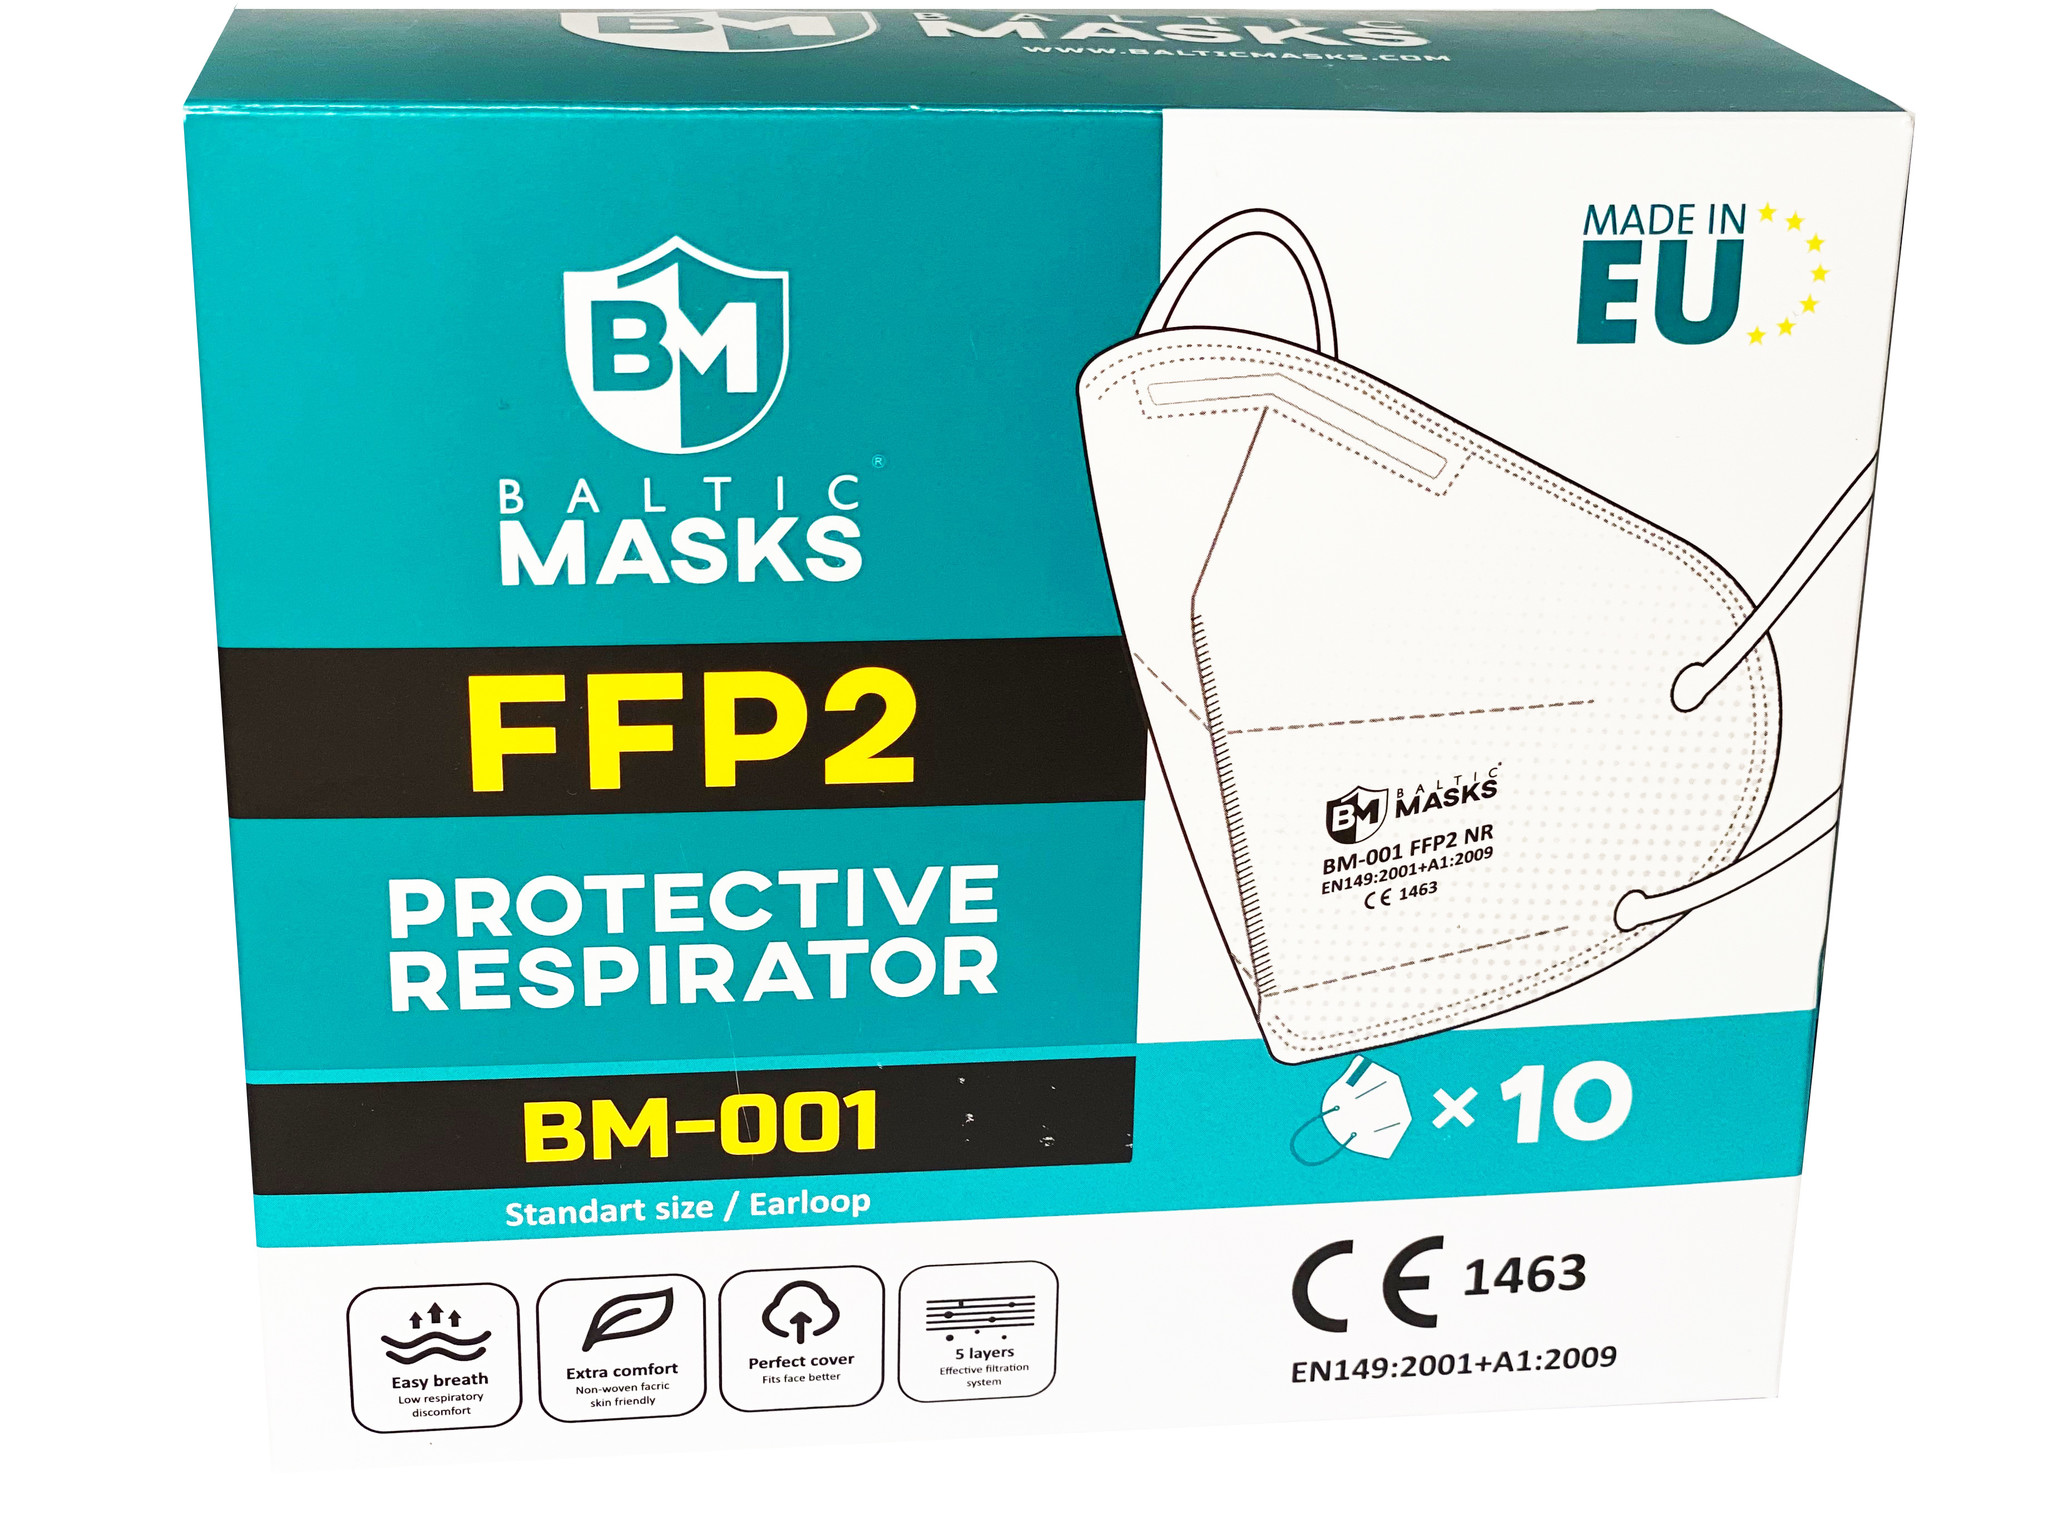 Baltic Masks Facemask FFP2 Mouth masks 10 pieces, Made in Europe